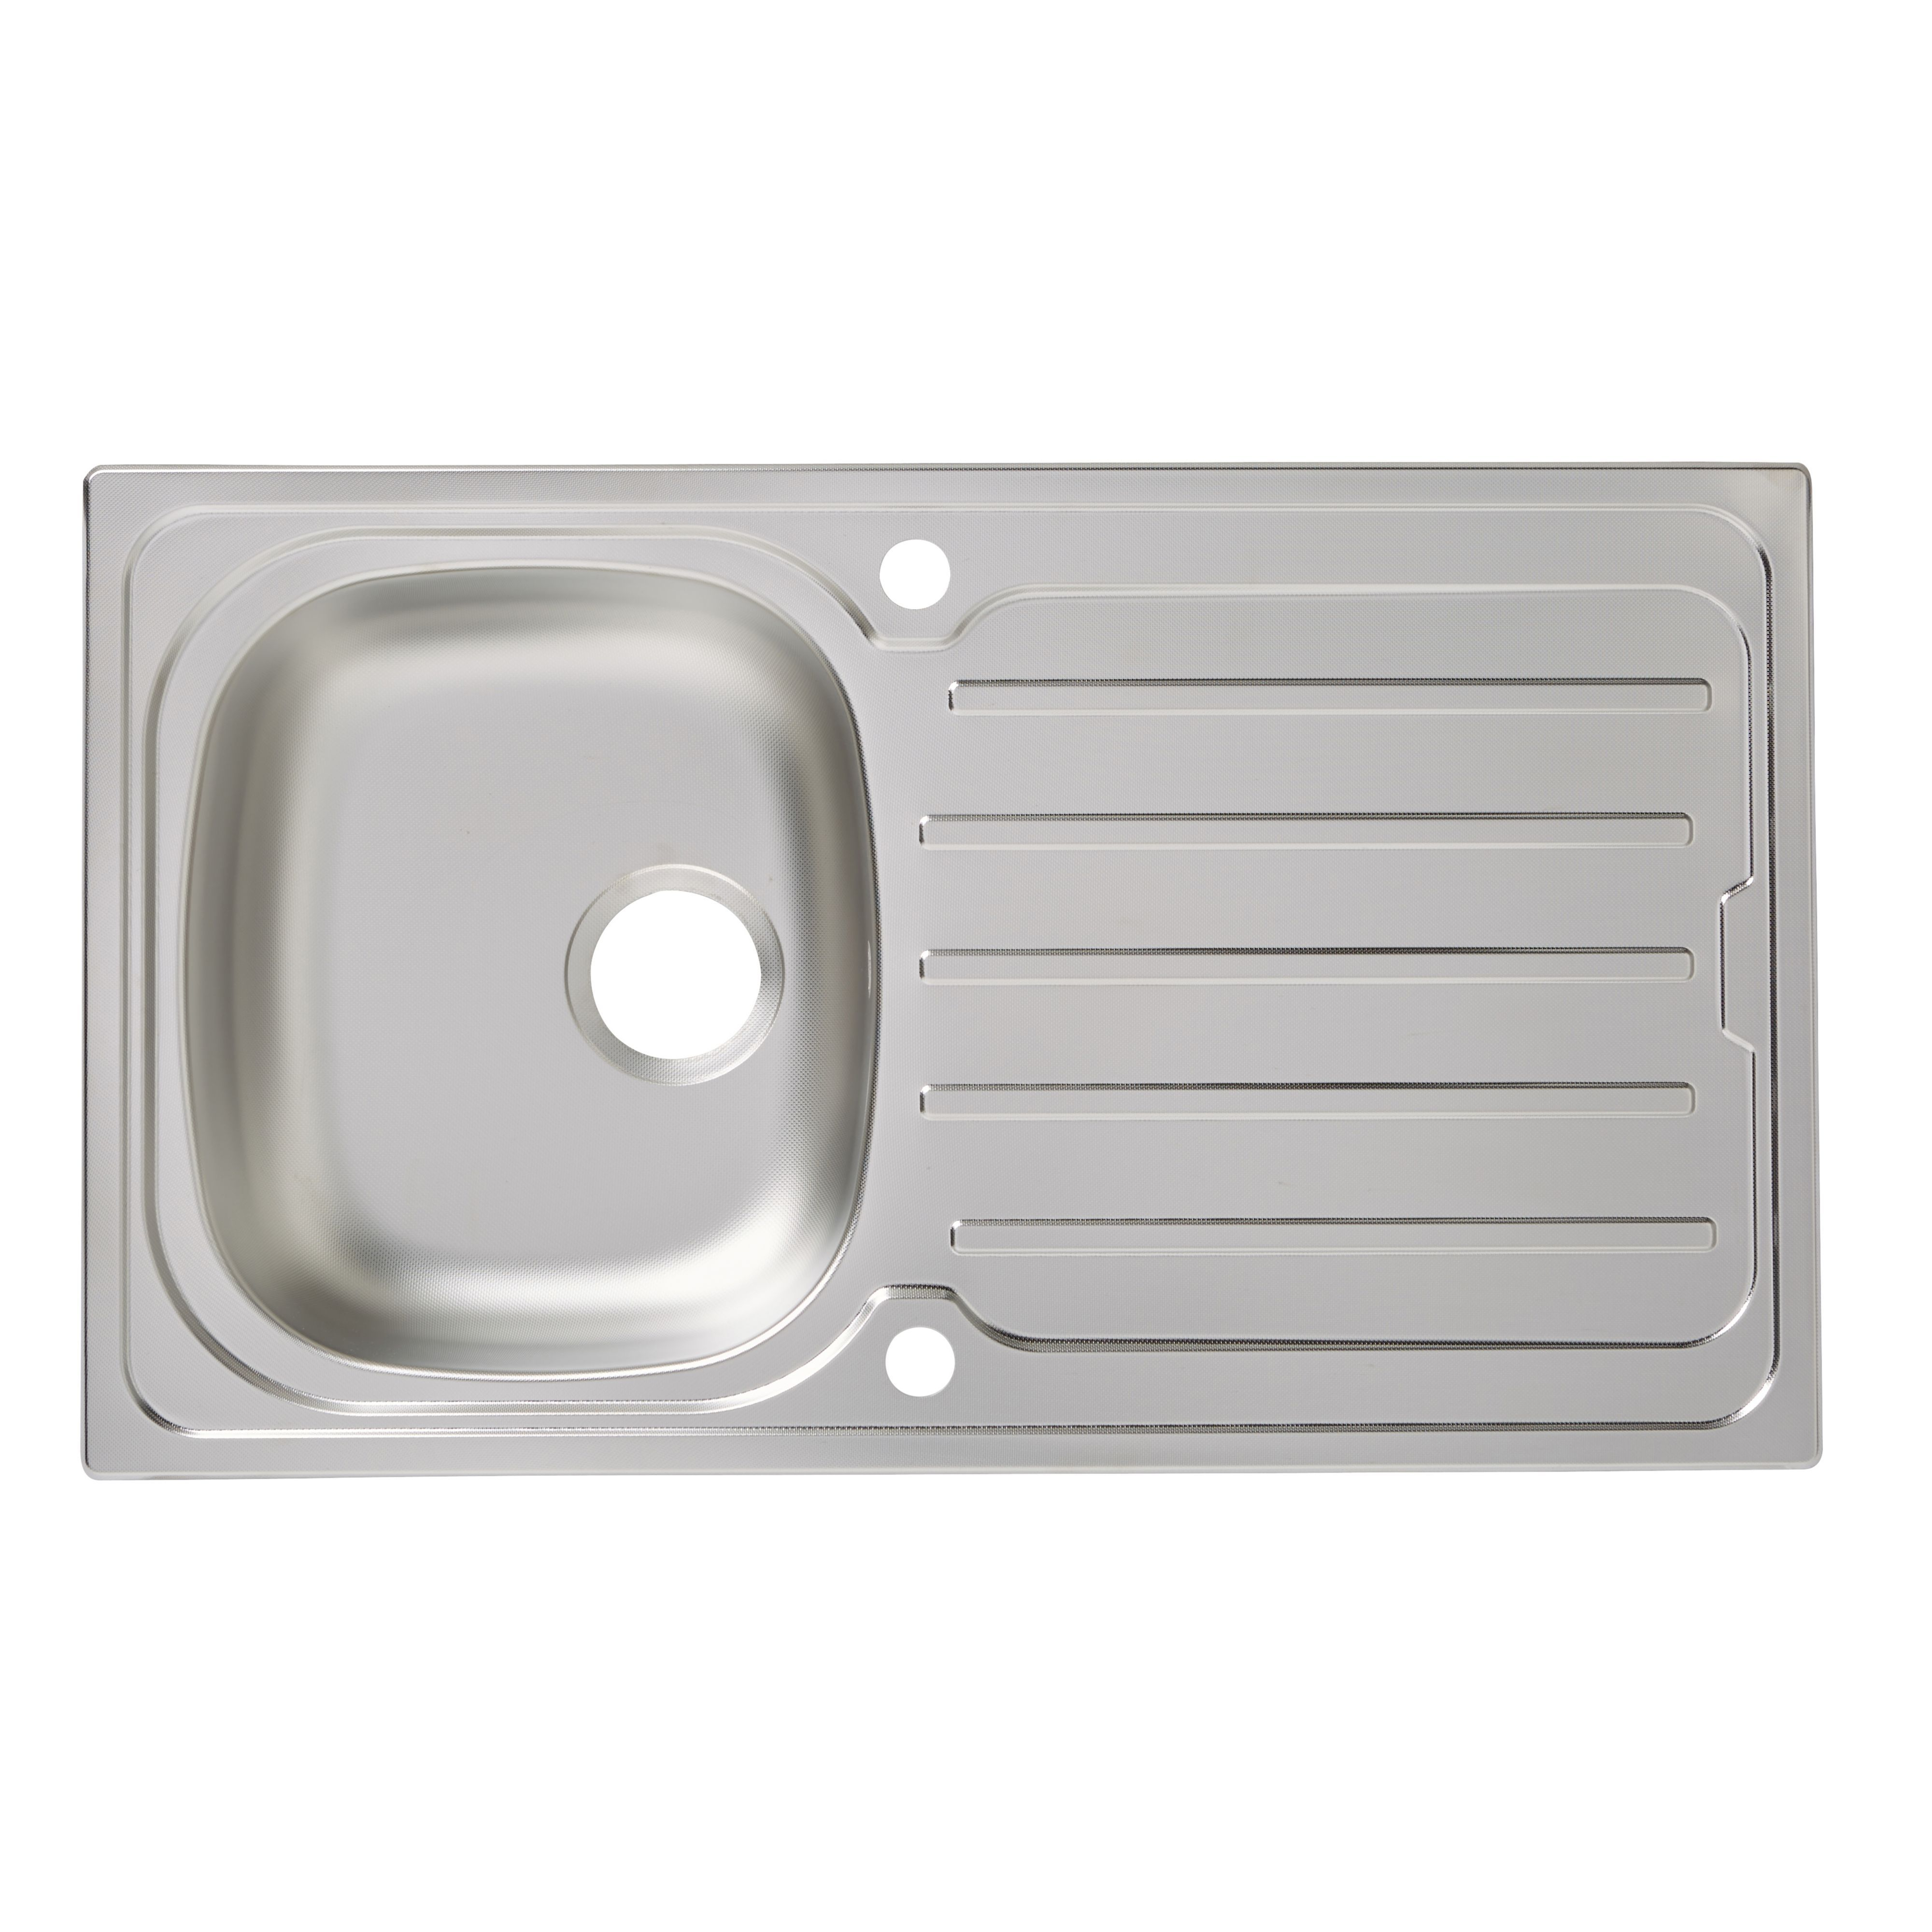 b q kitchen sink accessories cooke amp lewis nakaya 1 bowl linen finish stainless steel 4230